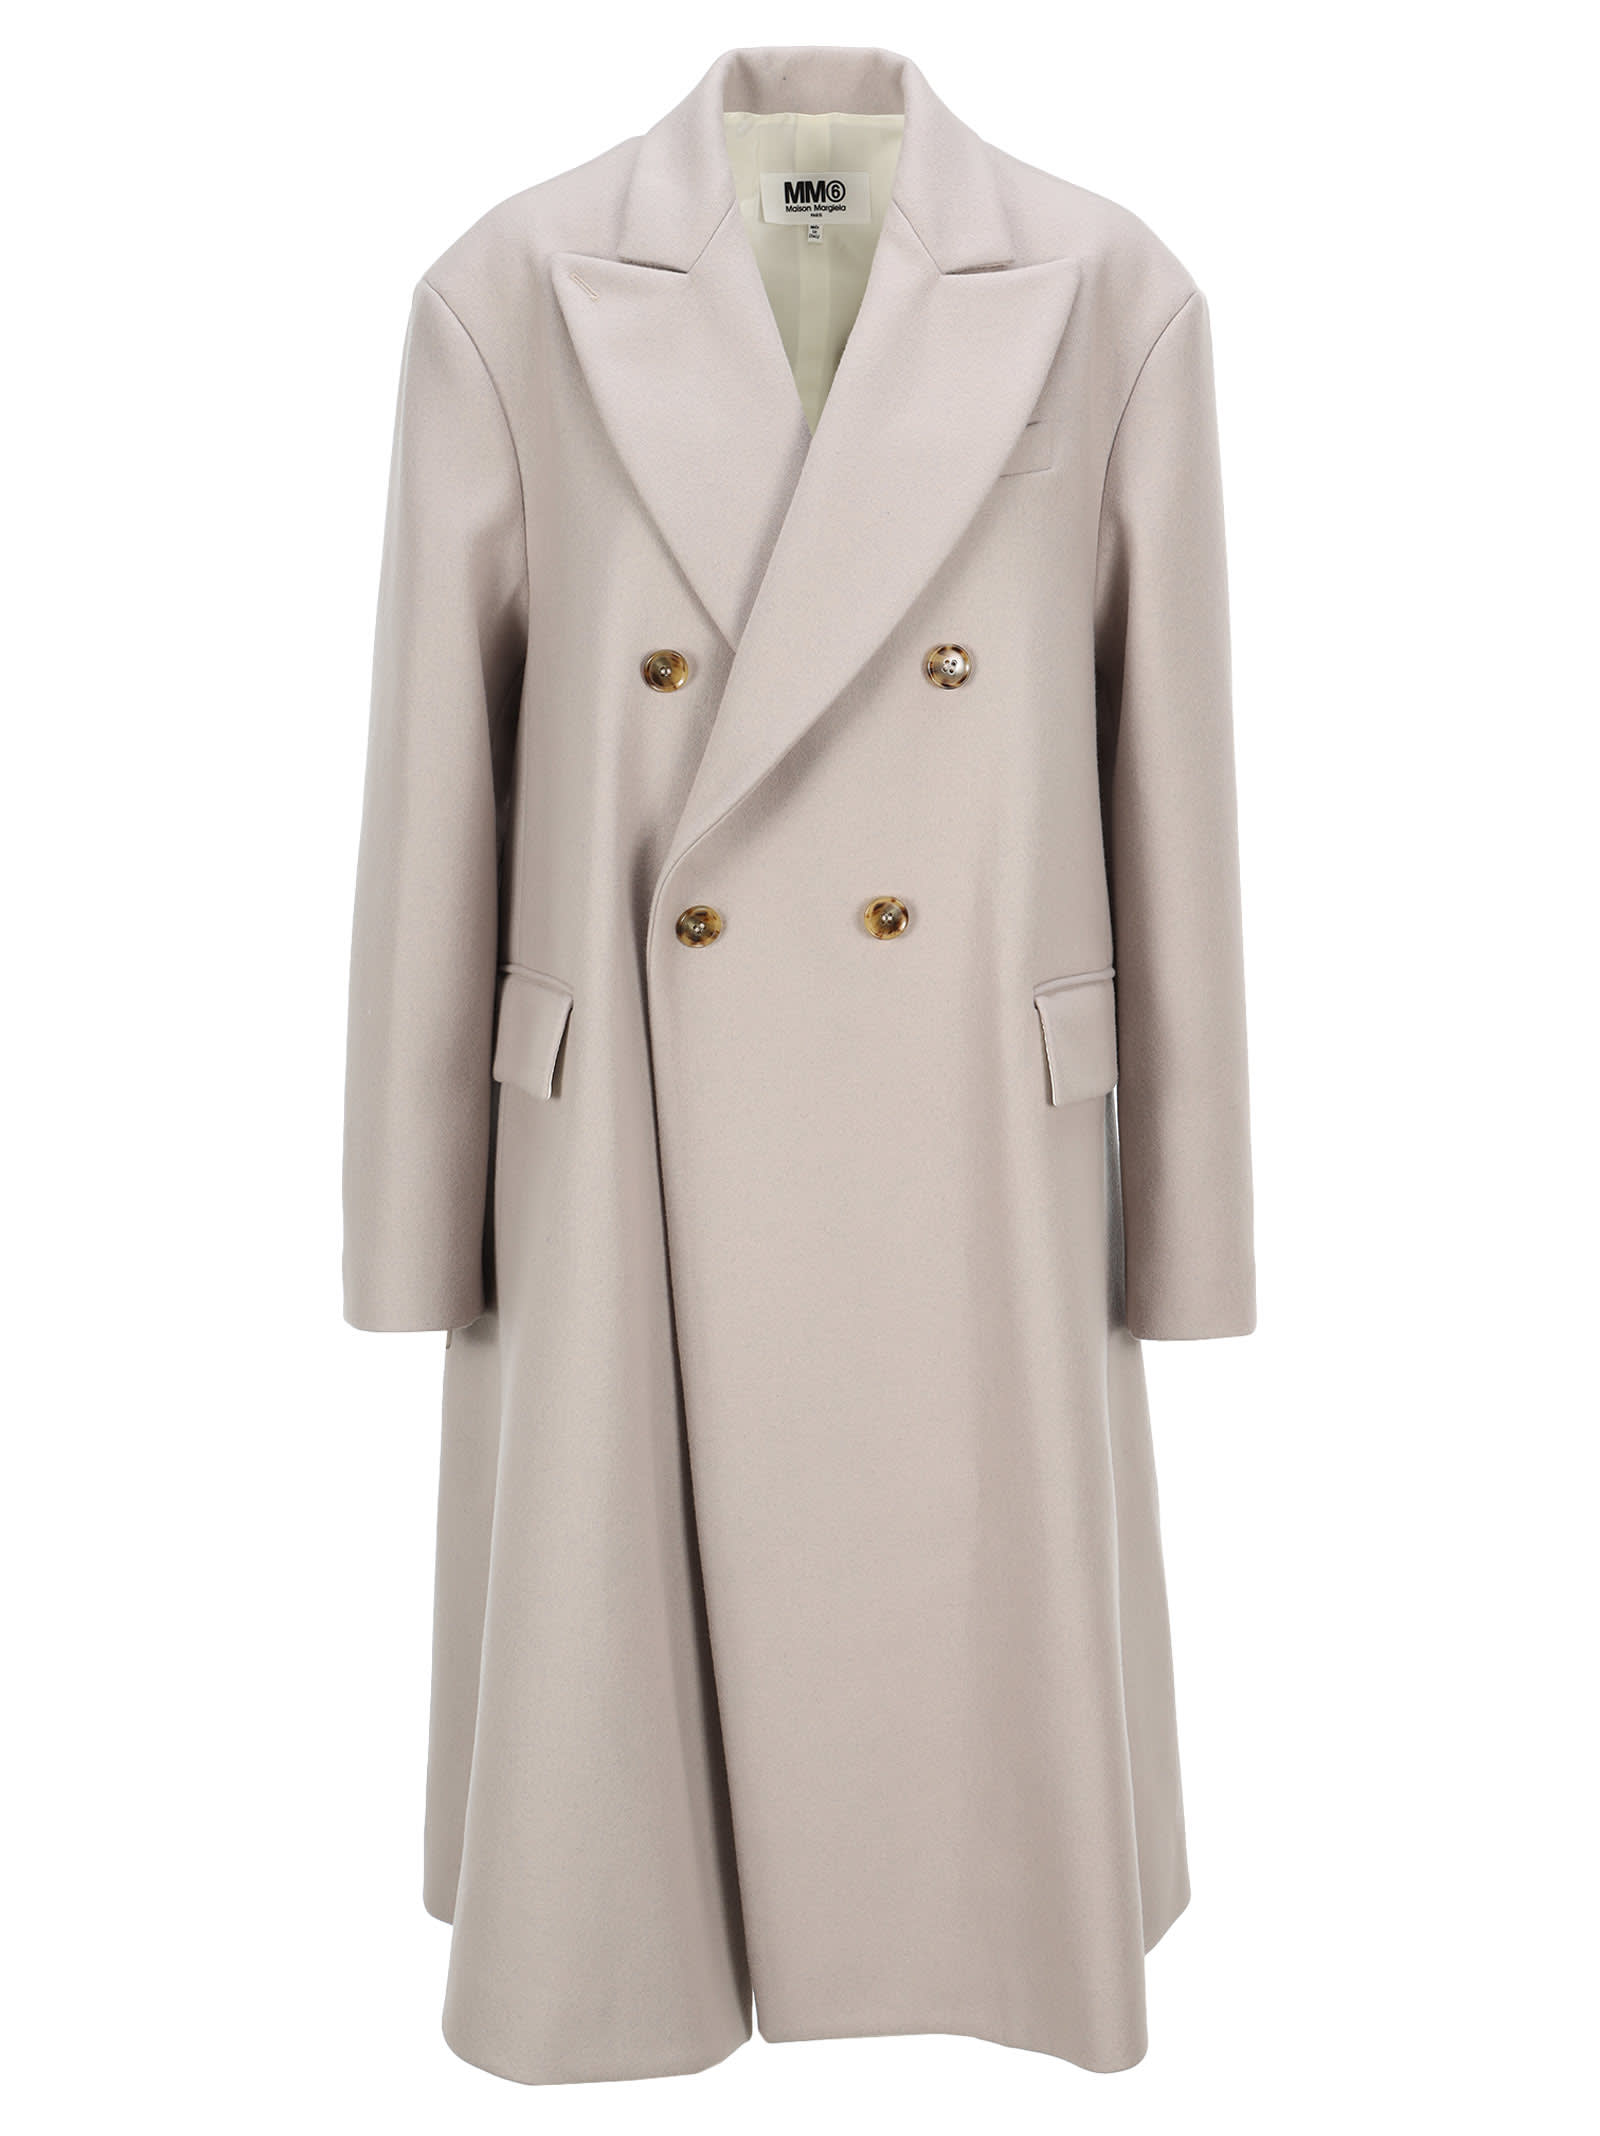 Mm6 Double-breasted Oversized Coat